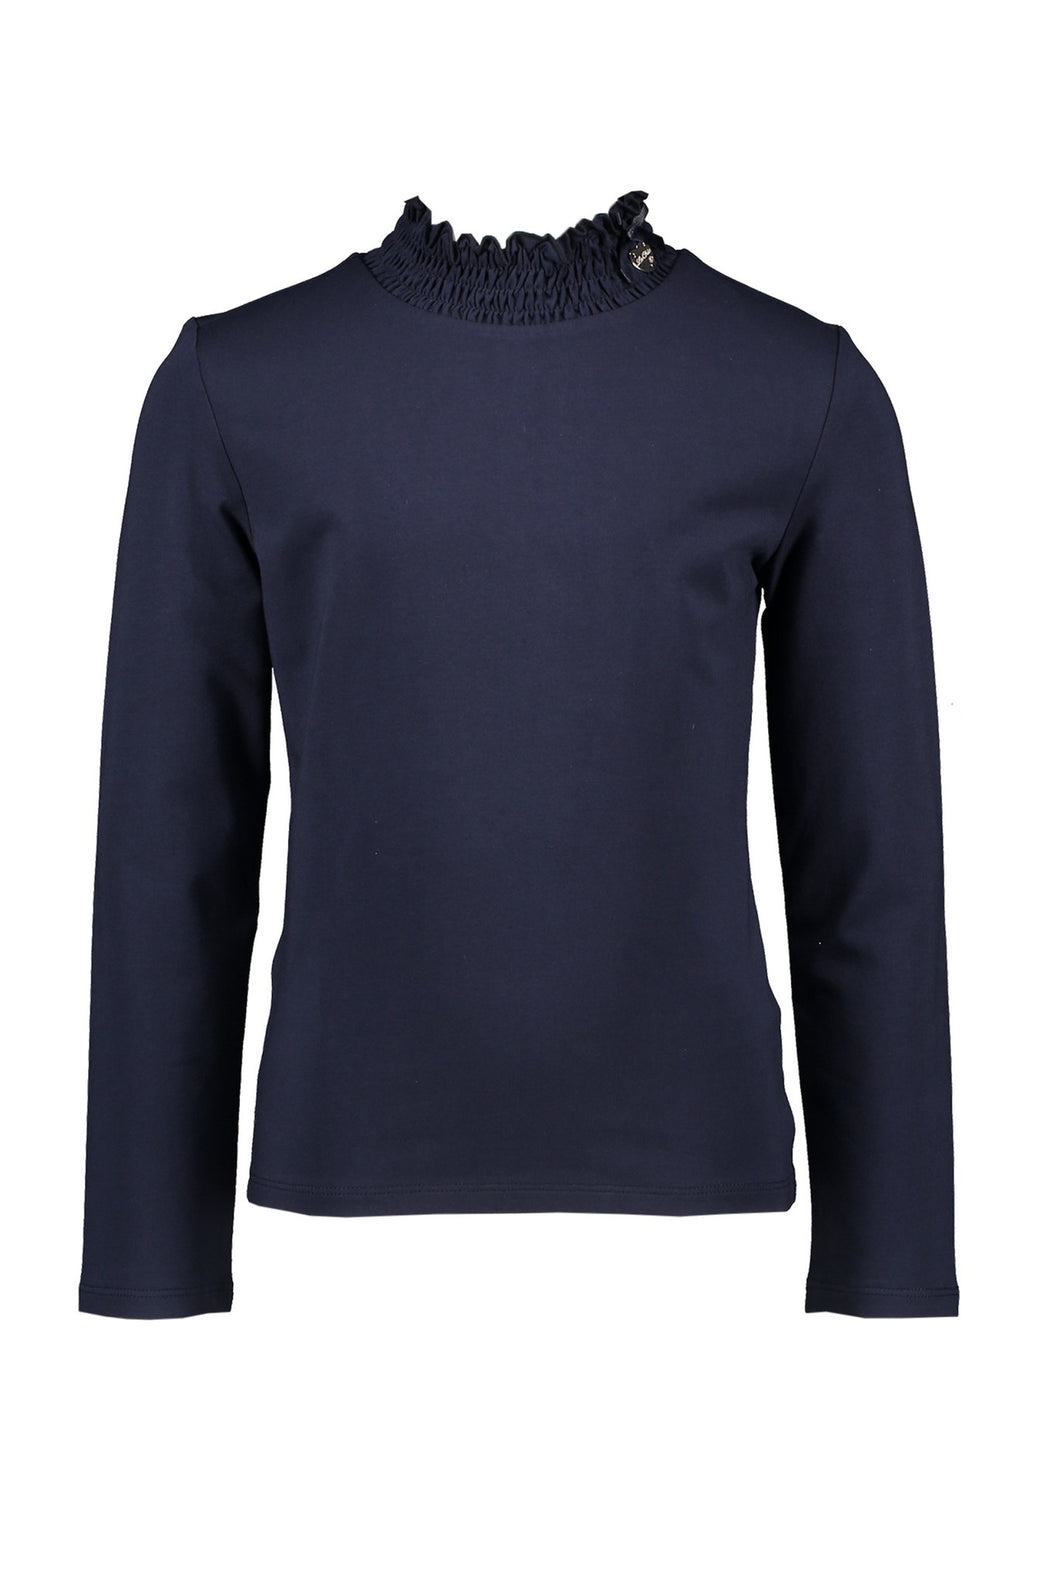 Le Chic Girls Navy Long Sleeve T-Shirt With Smock Collar